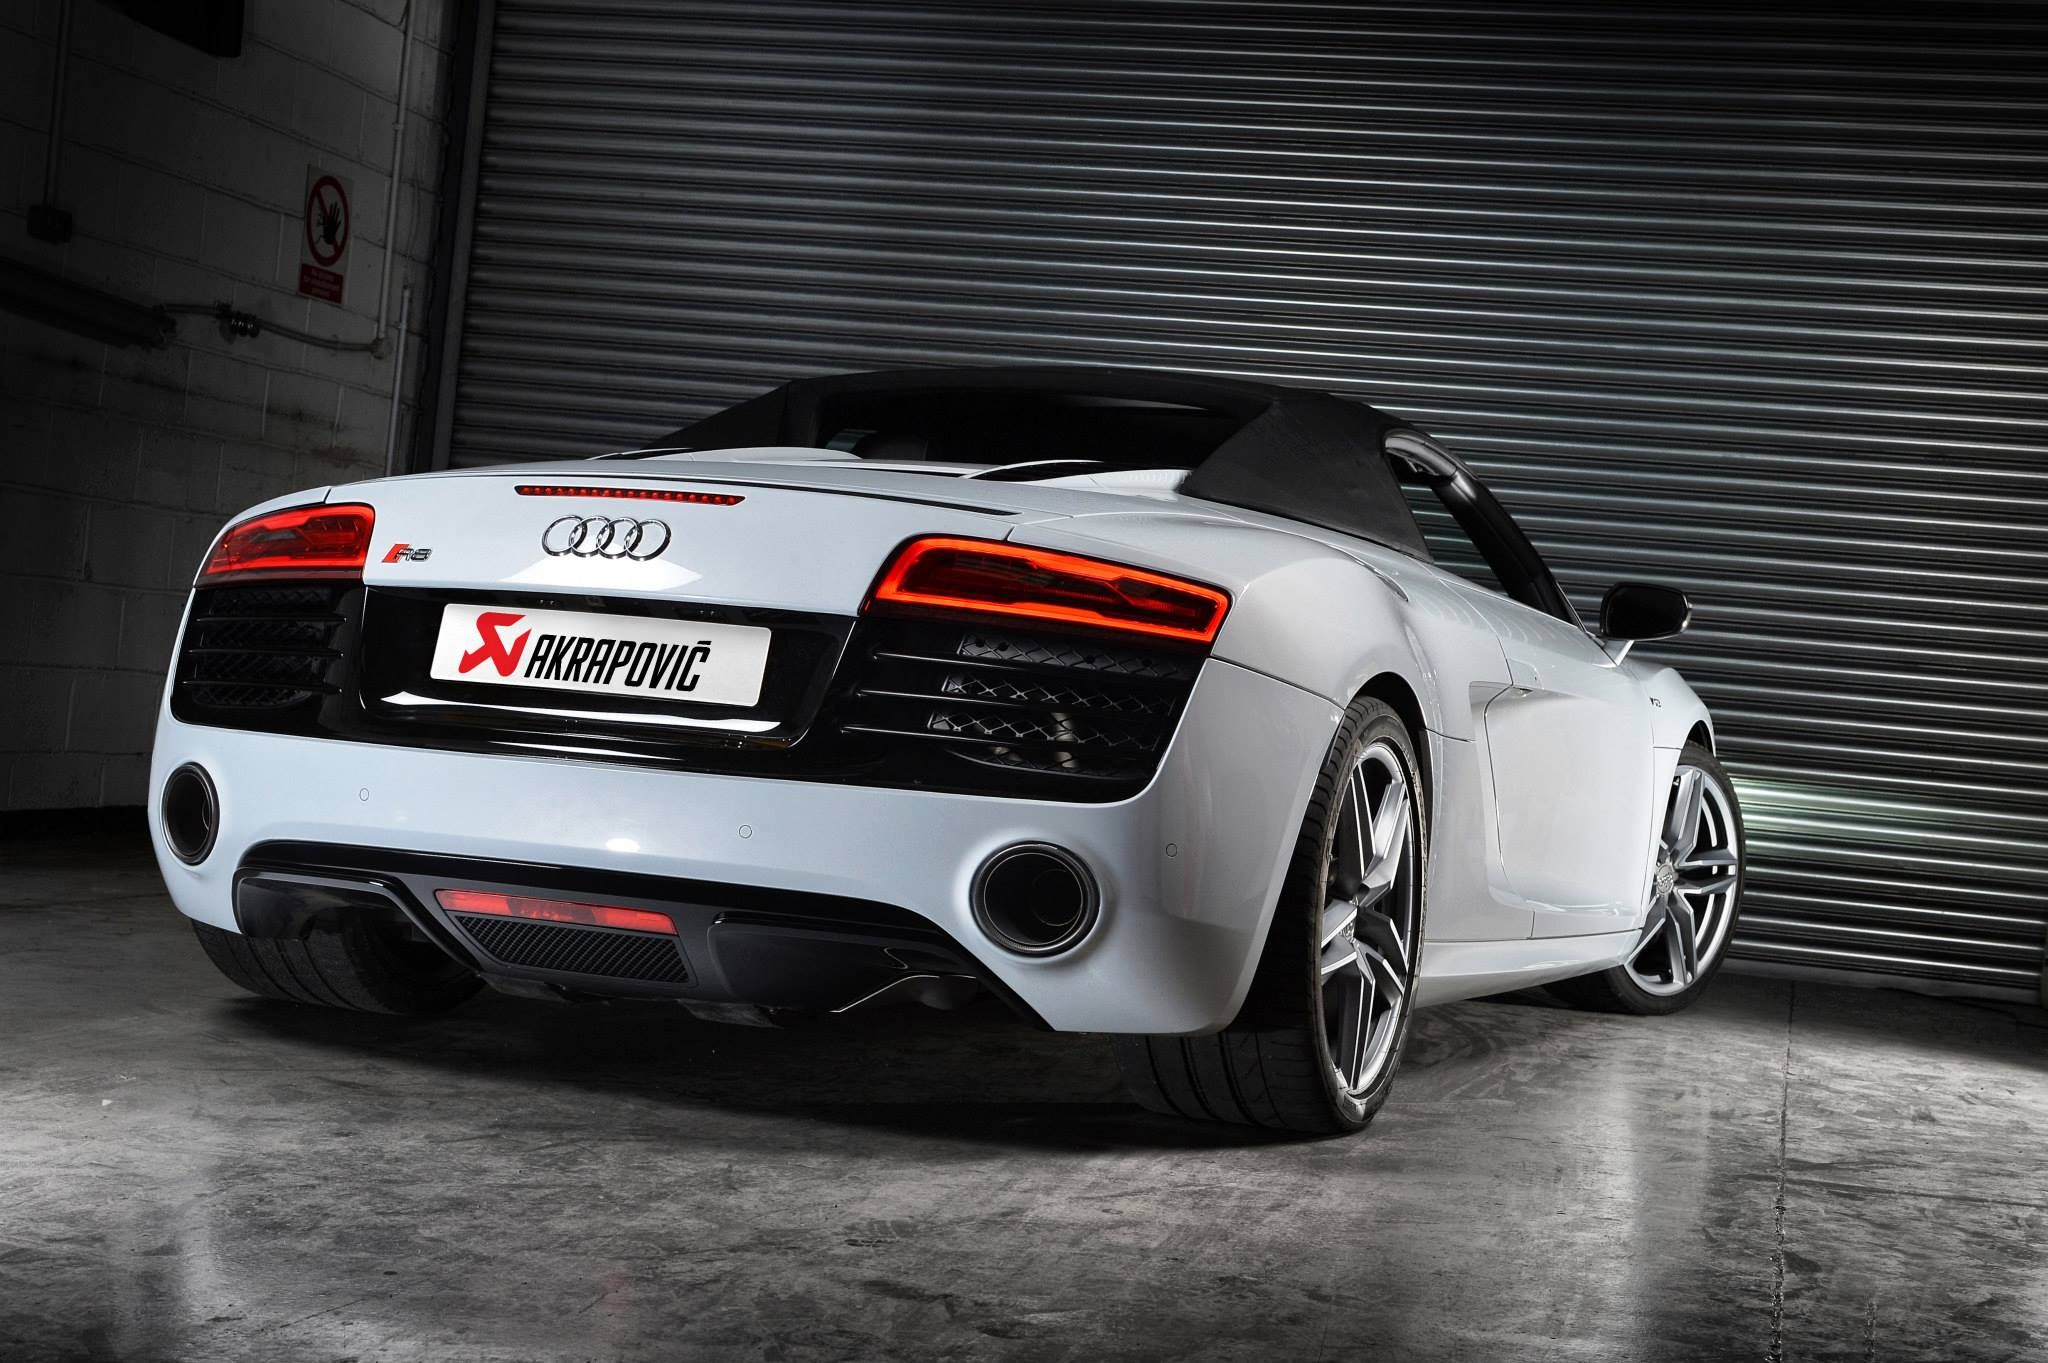 Awesome 2014 Audi R8 V10 Demo Car Akrapovic Slip On System